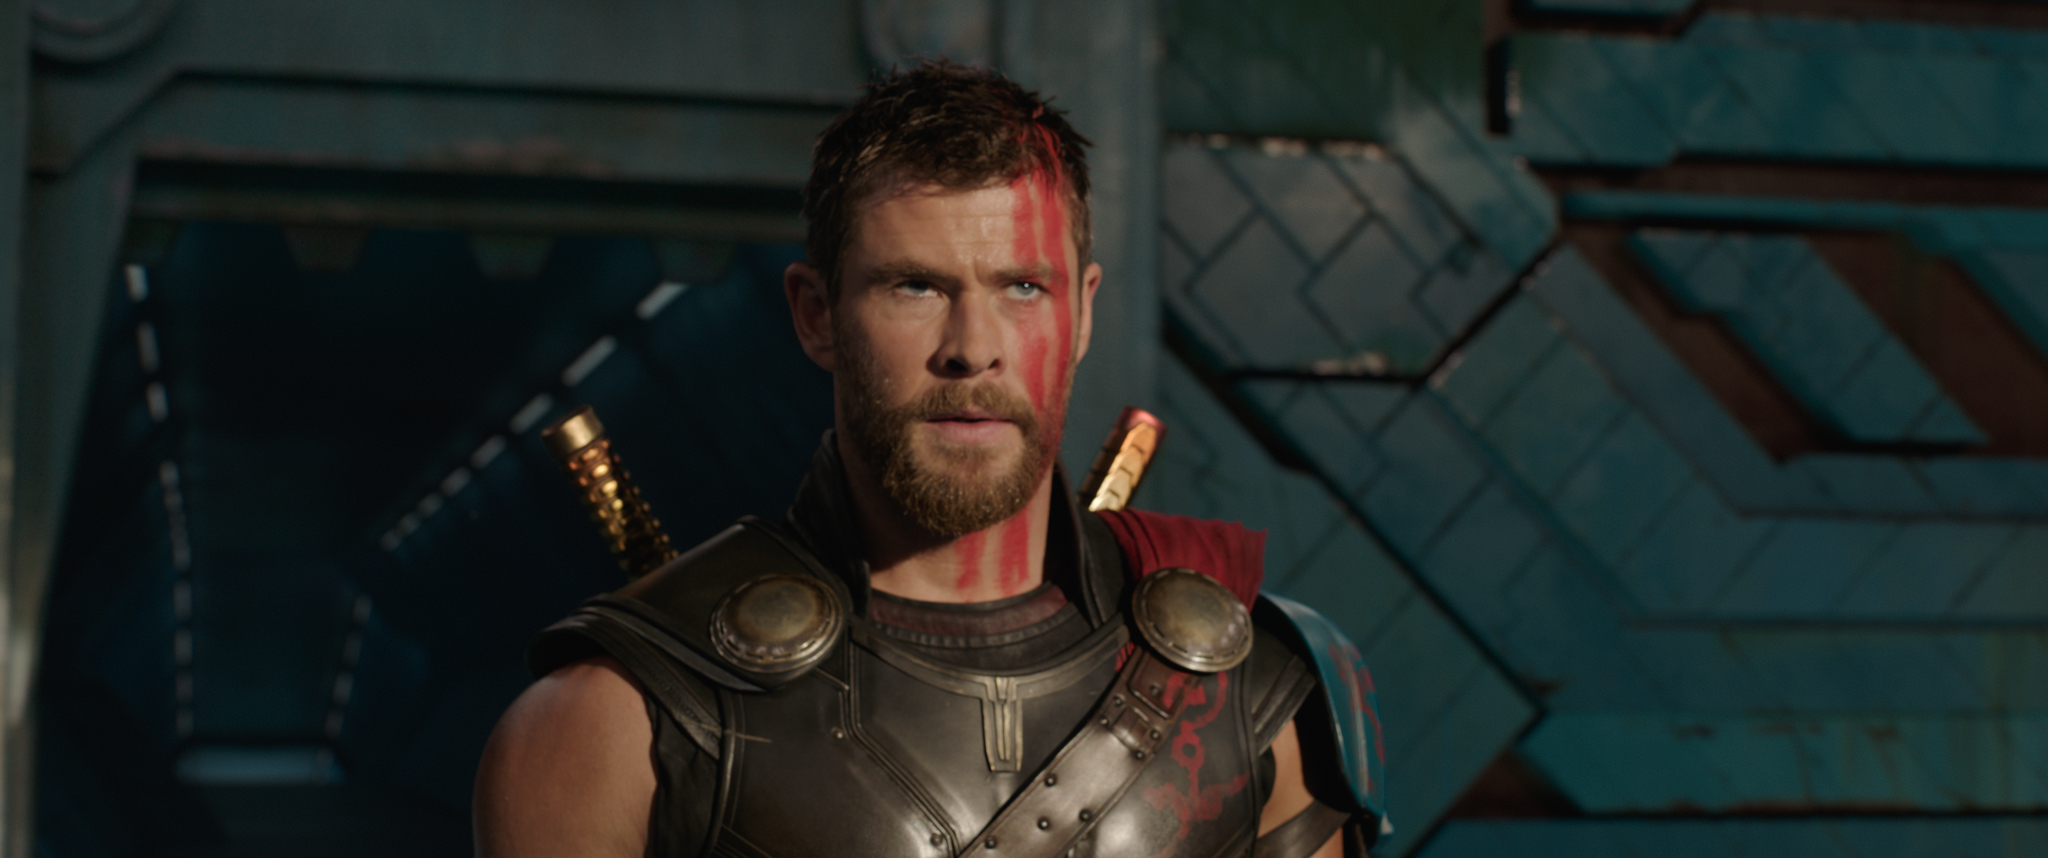 Avengers: Endgame Thor Chris Hemsworth